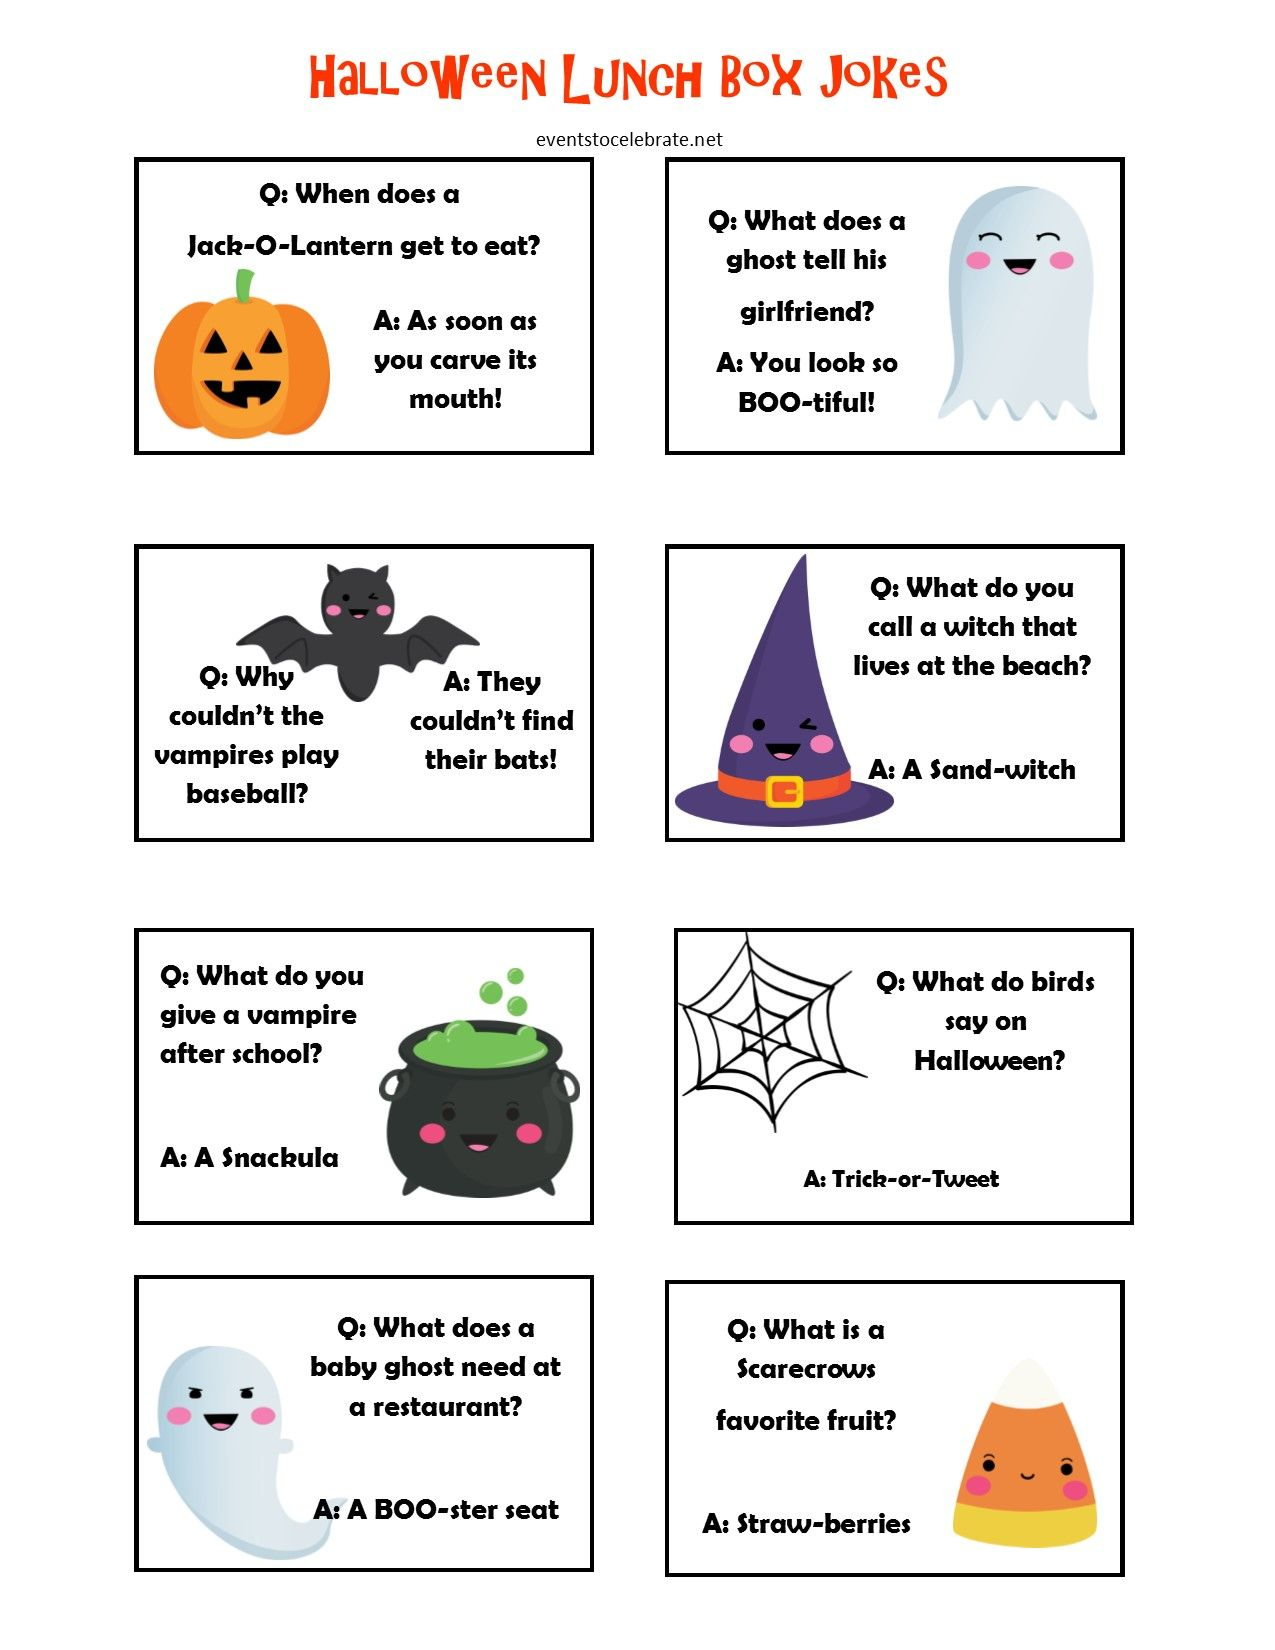 Halloween Lunch Box Jokes That Are Scary Funny Scary Funny